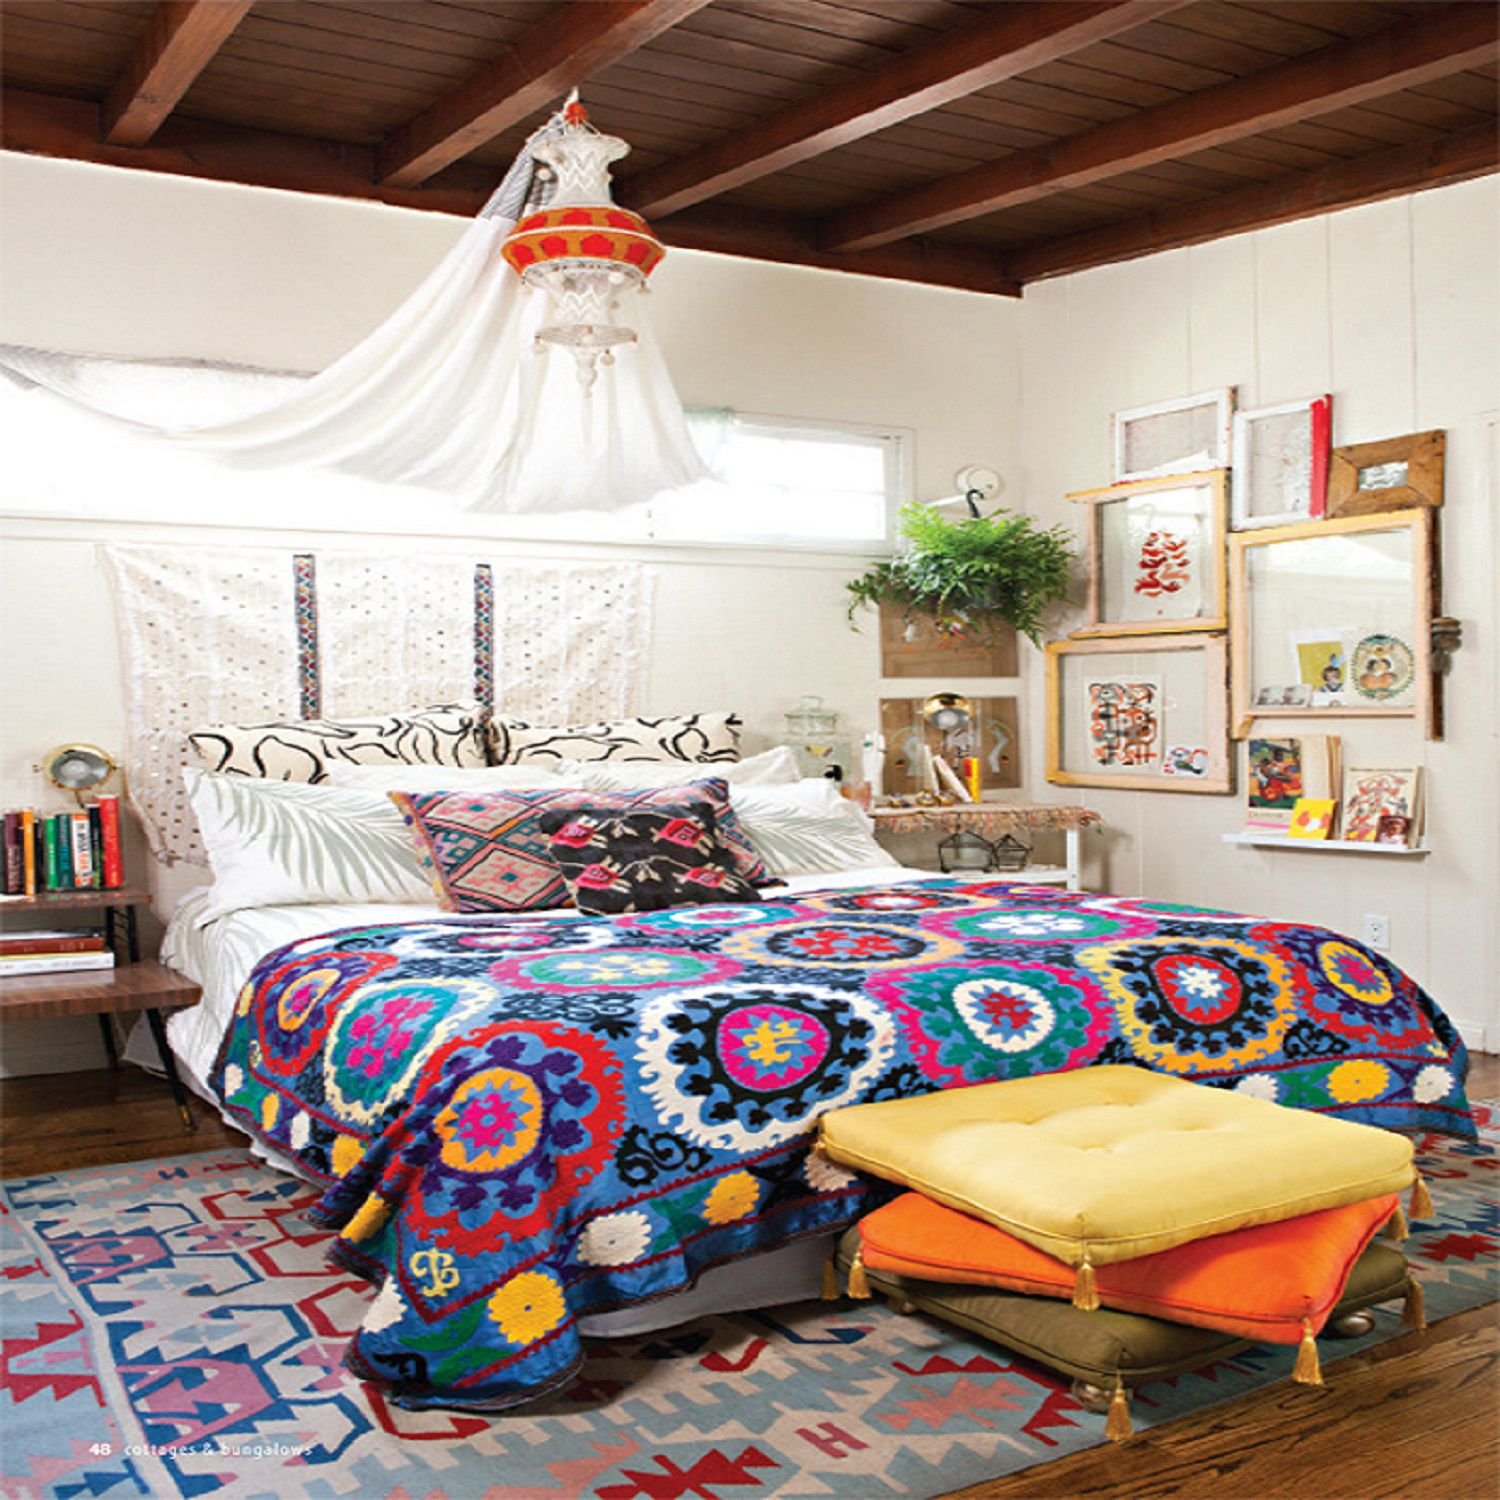 Home Design Ideas Easy: Beautiful Boho Bedroom Decorating Ideas And Photos